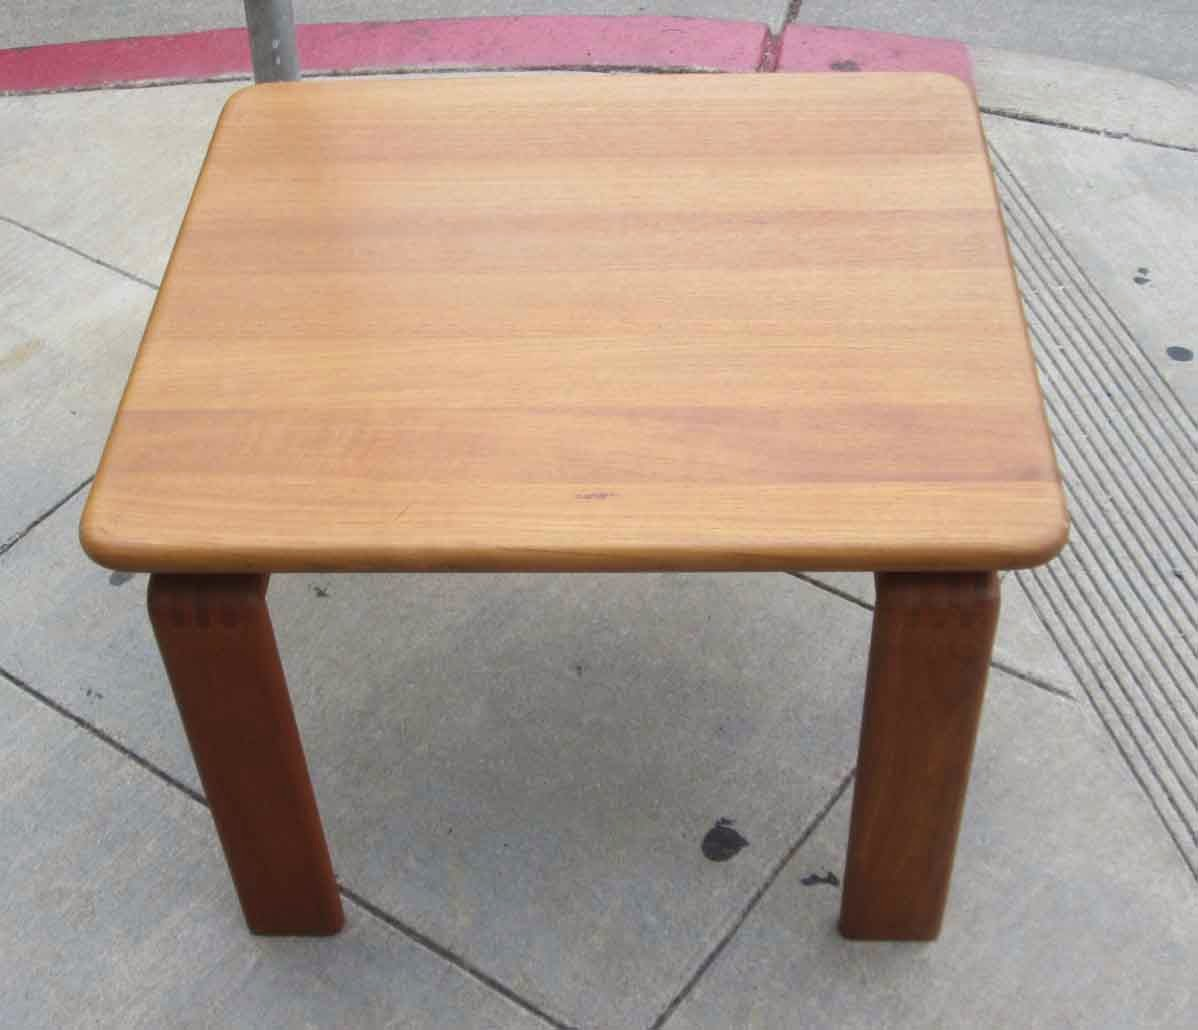 Uhuru Furniture Collectibles Sold Solid Teak Coffee Table 75